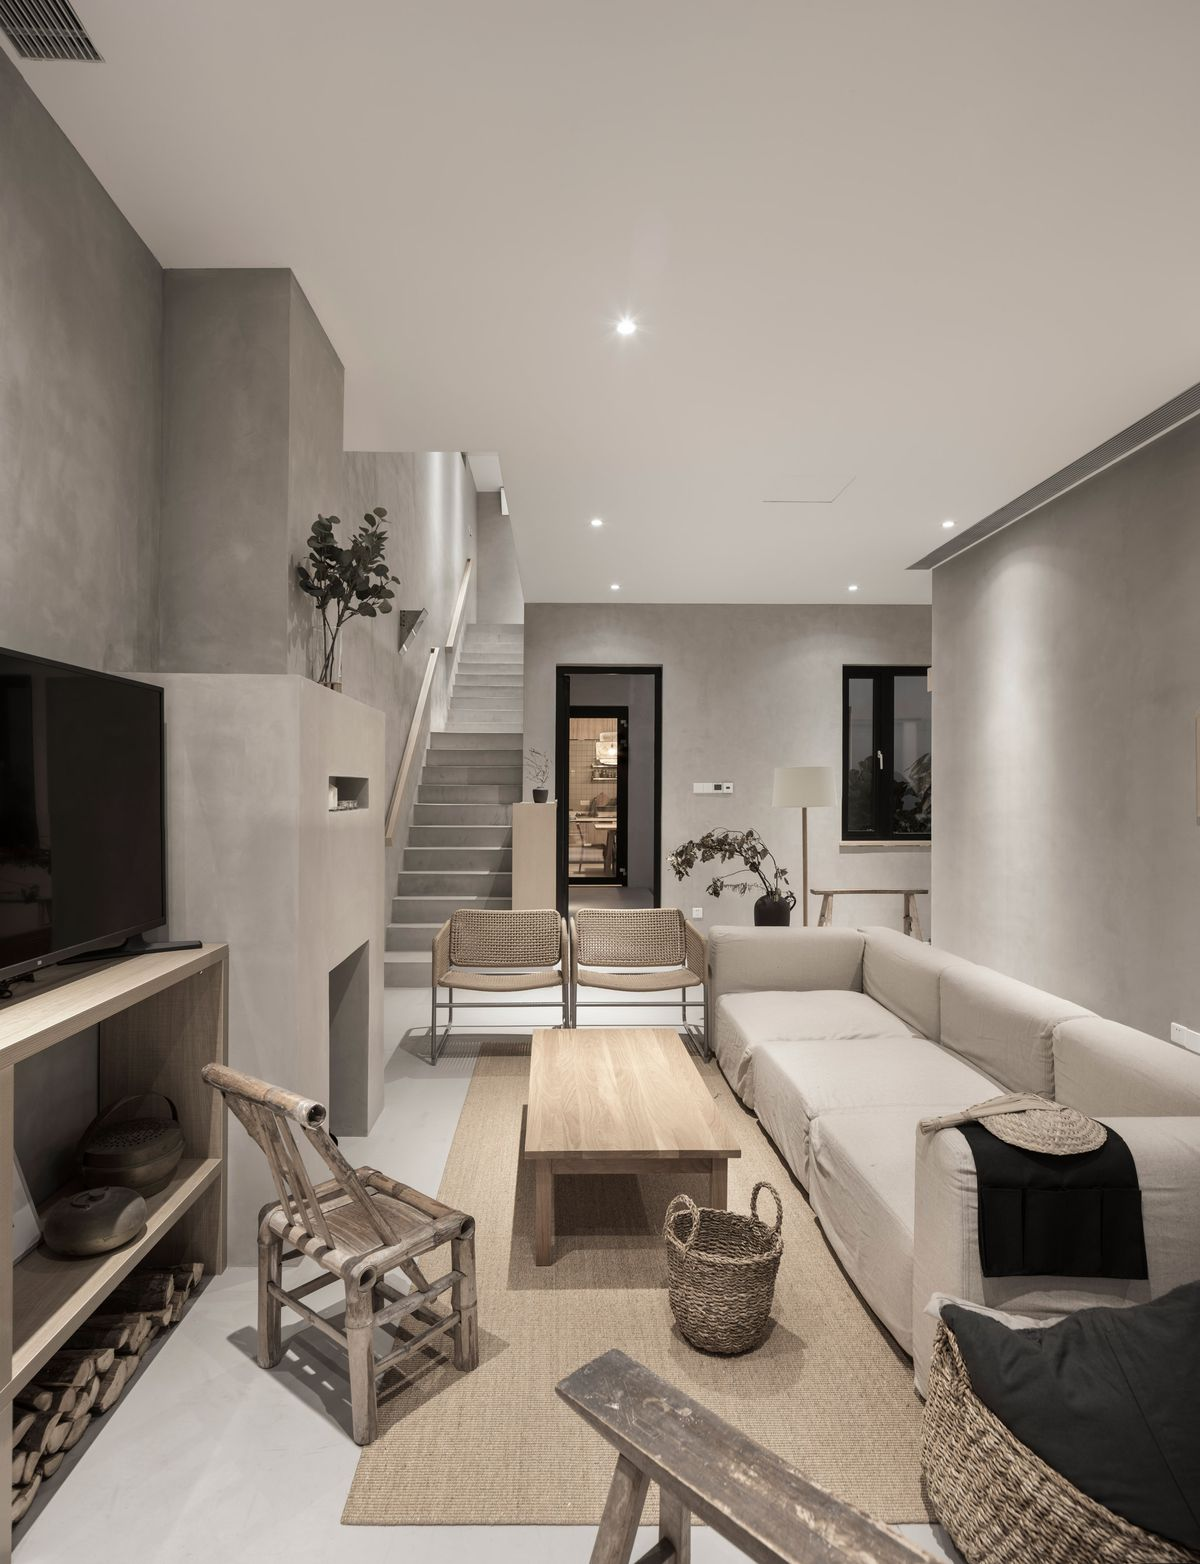 Living room with neutral colored furniture